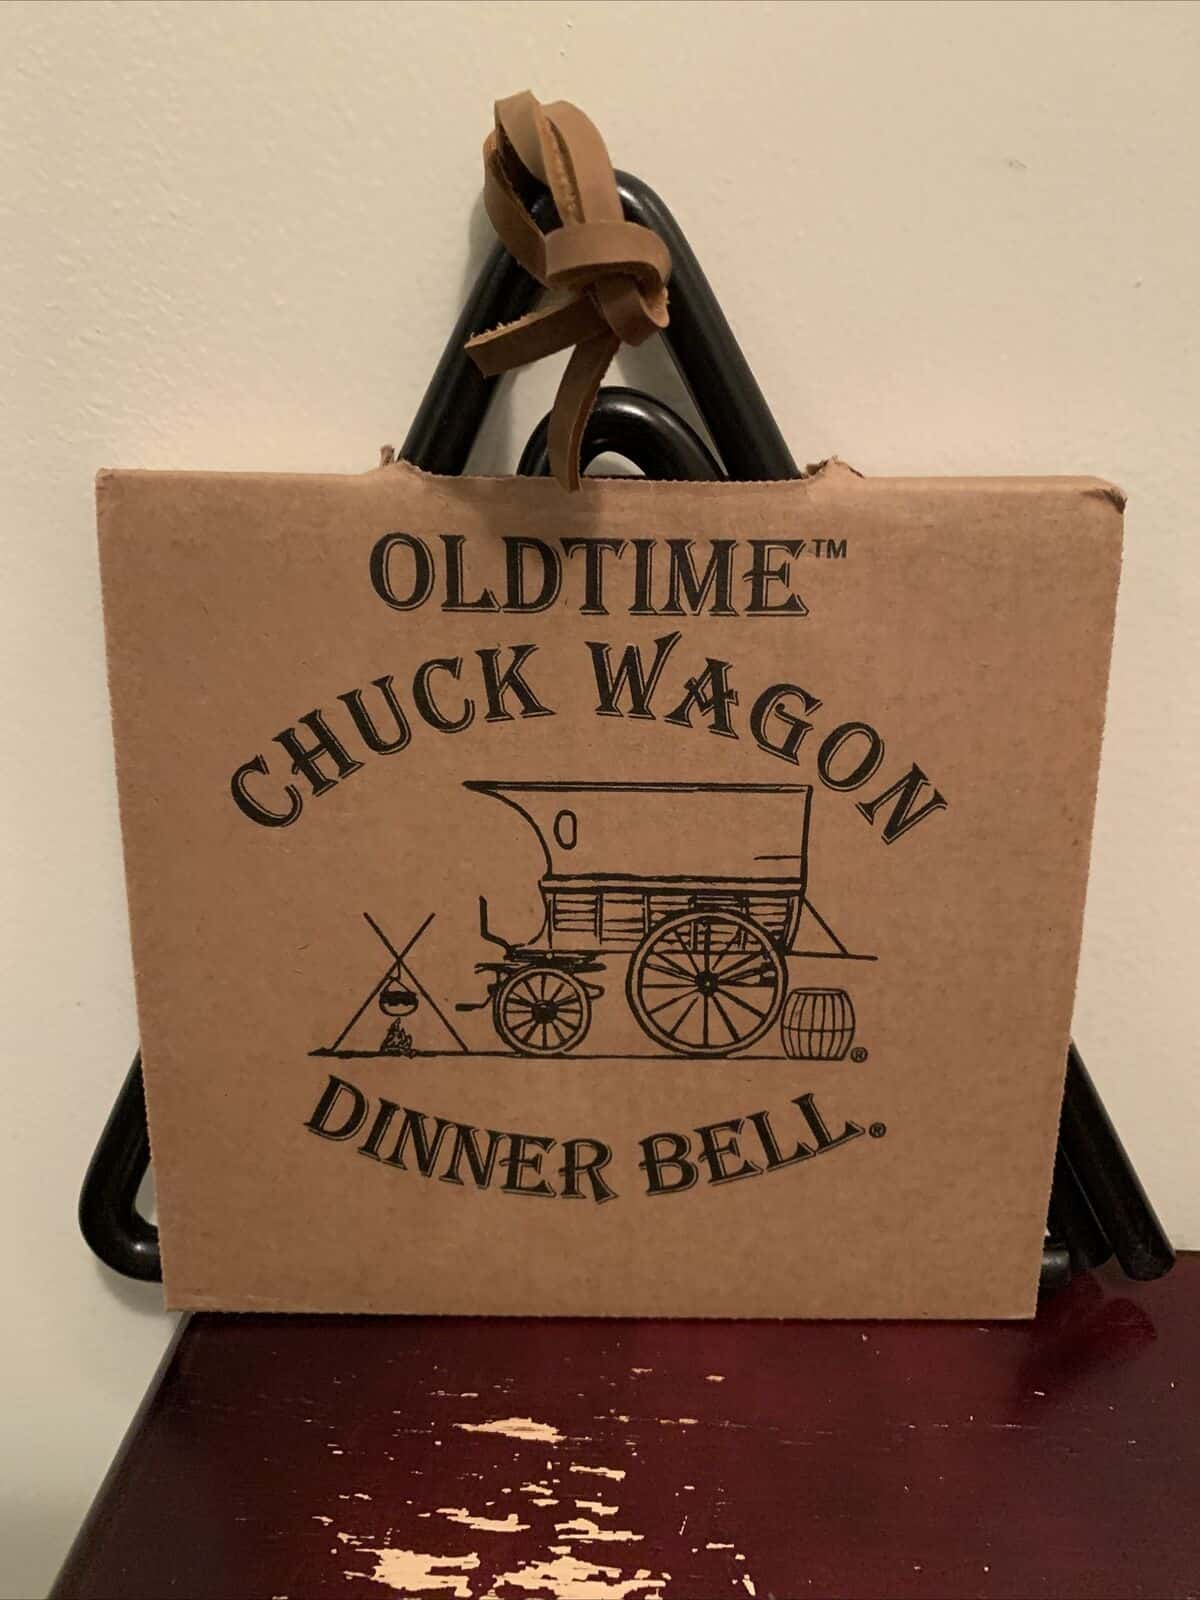 Old Time Chuck Wagon Dinner Bell - 10 inches